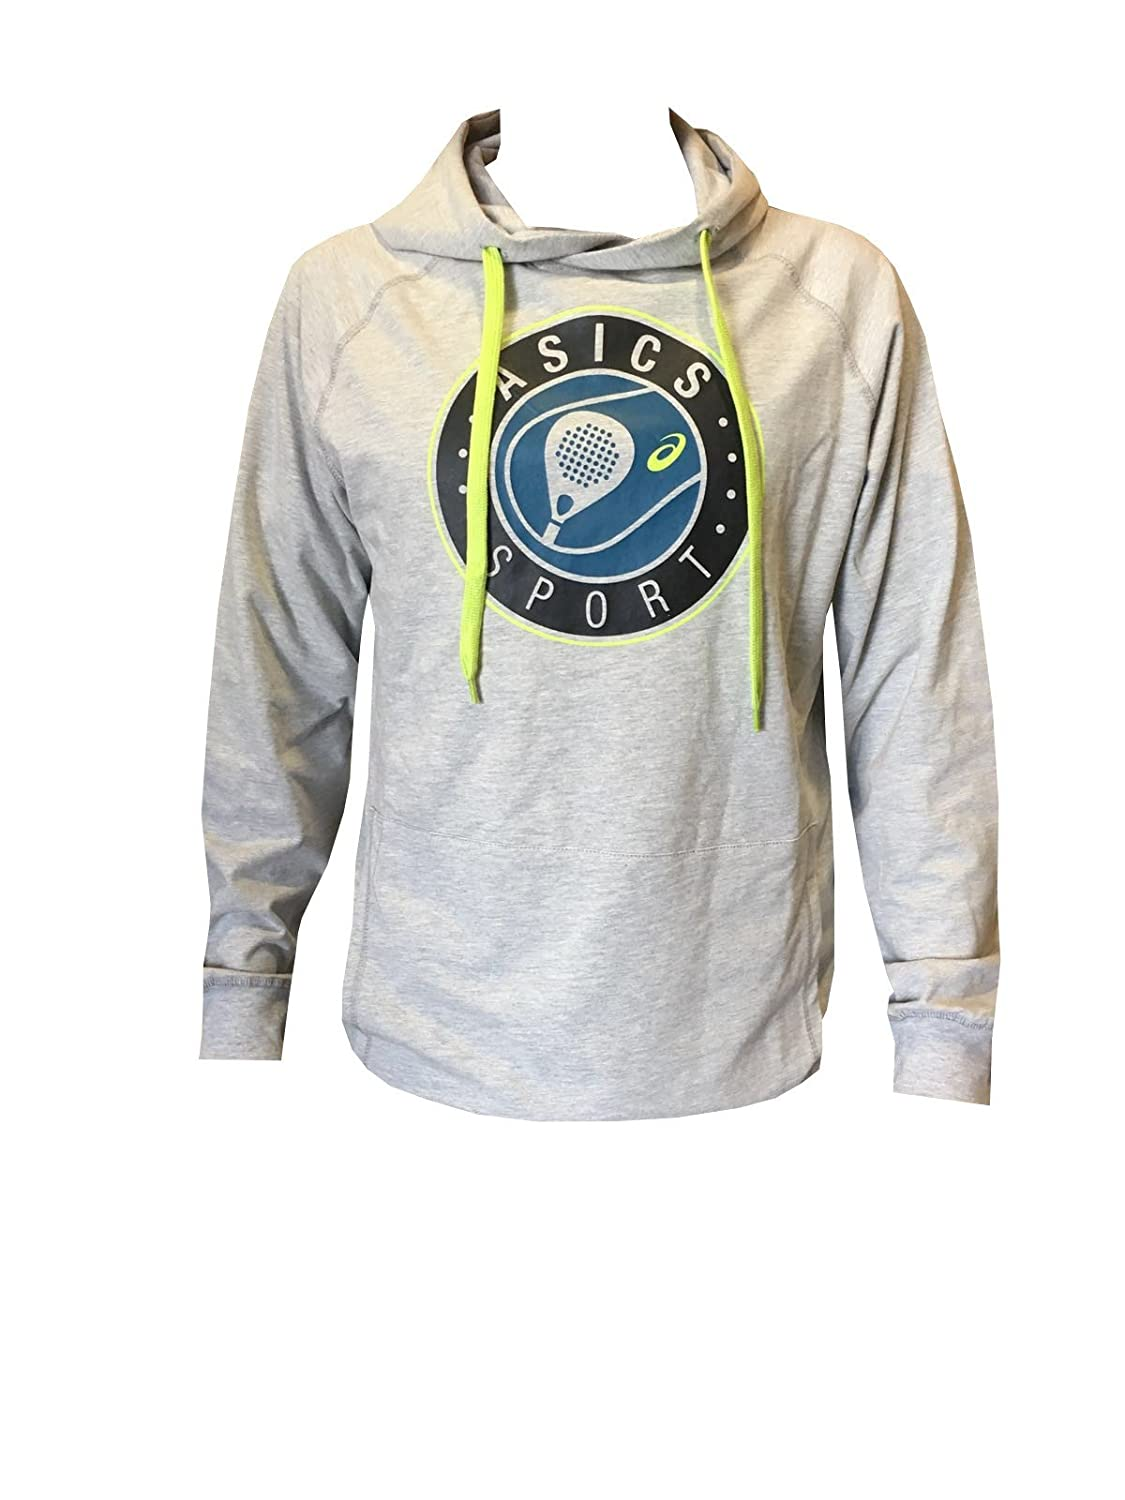 ASICS - Padel Graphic Hoodie, Color Gris, Talla S: Amazon.es ...